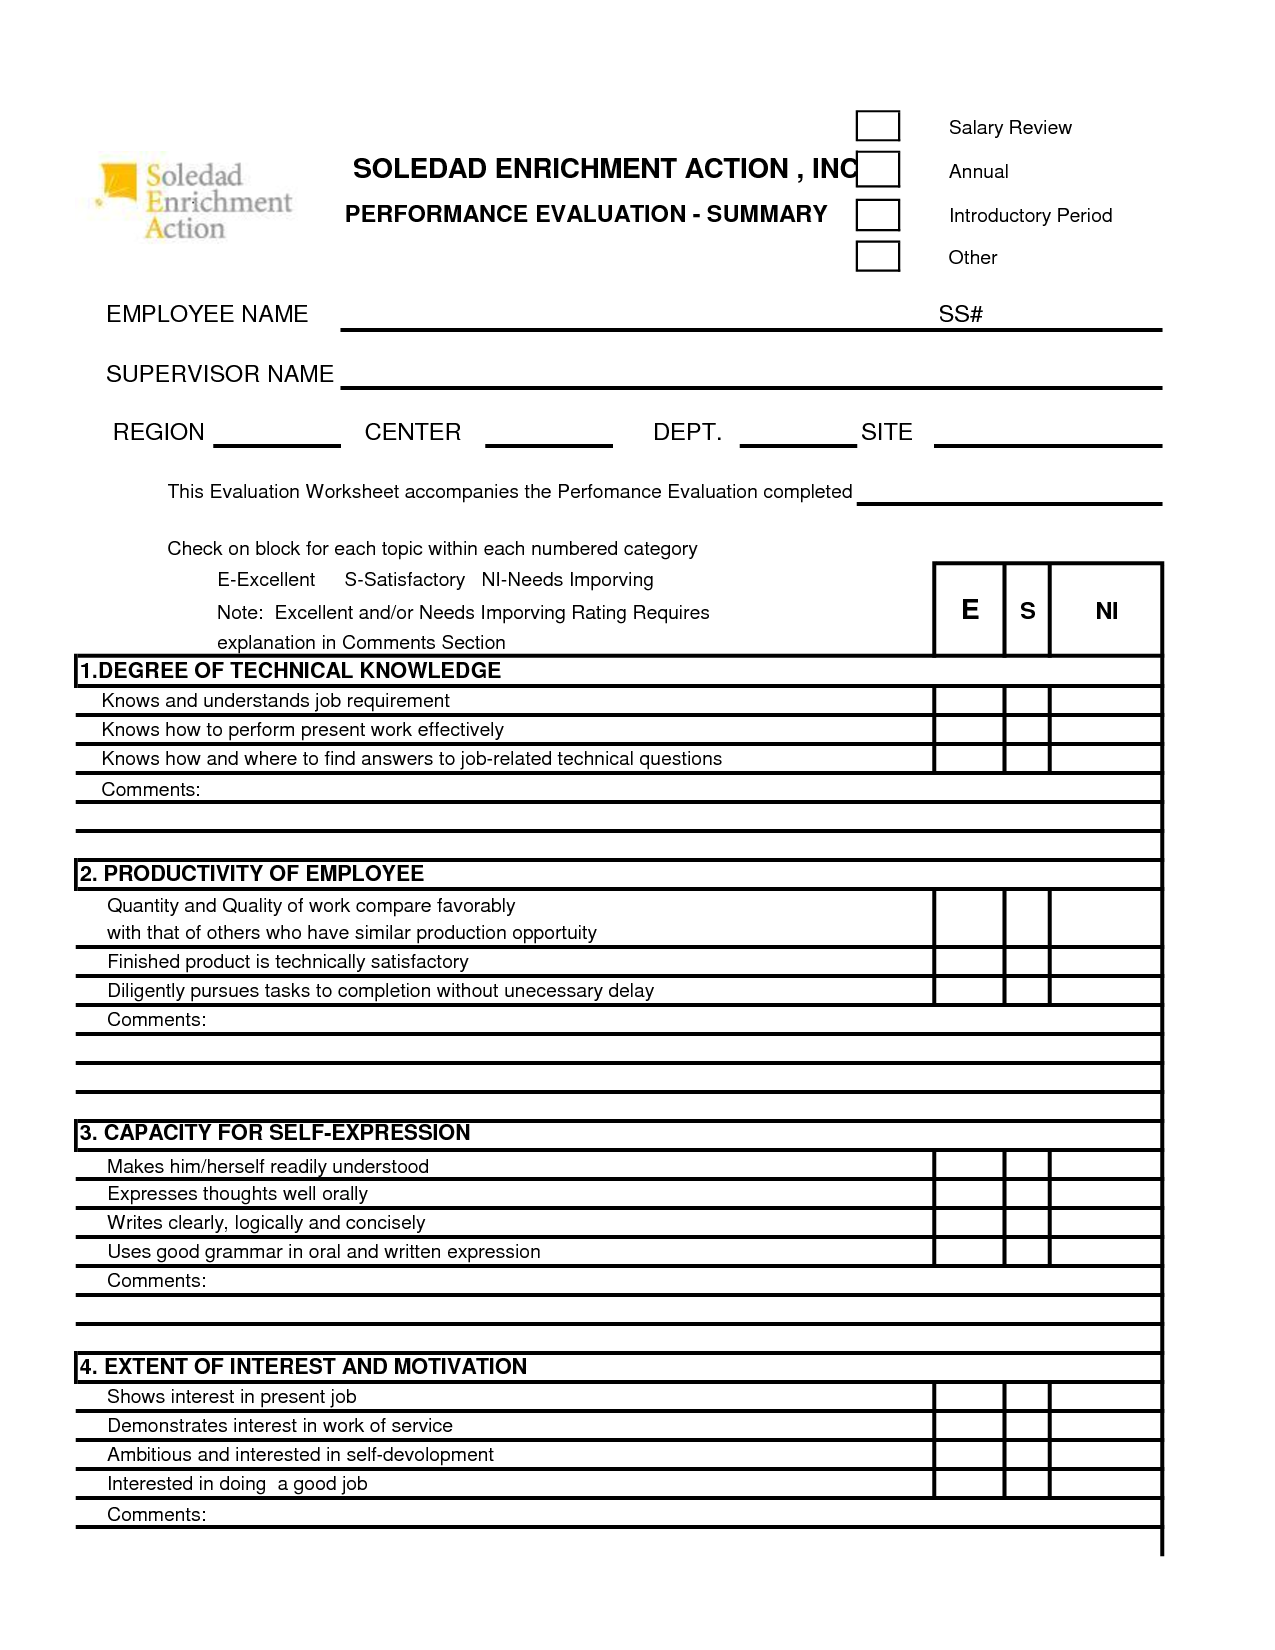 Free 360 performance appraisal form google search for 360 performance evaluation template